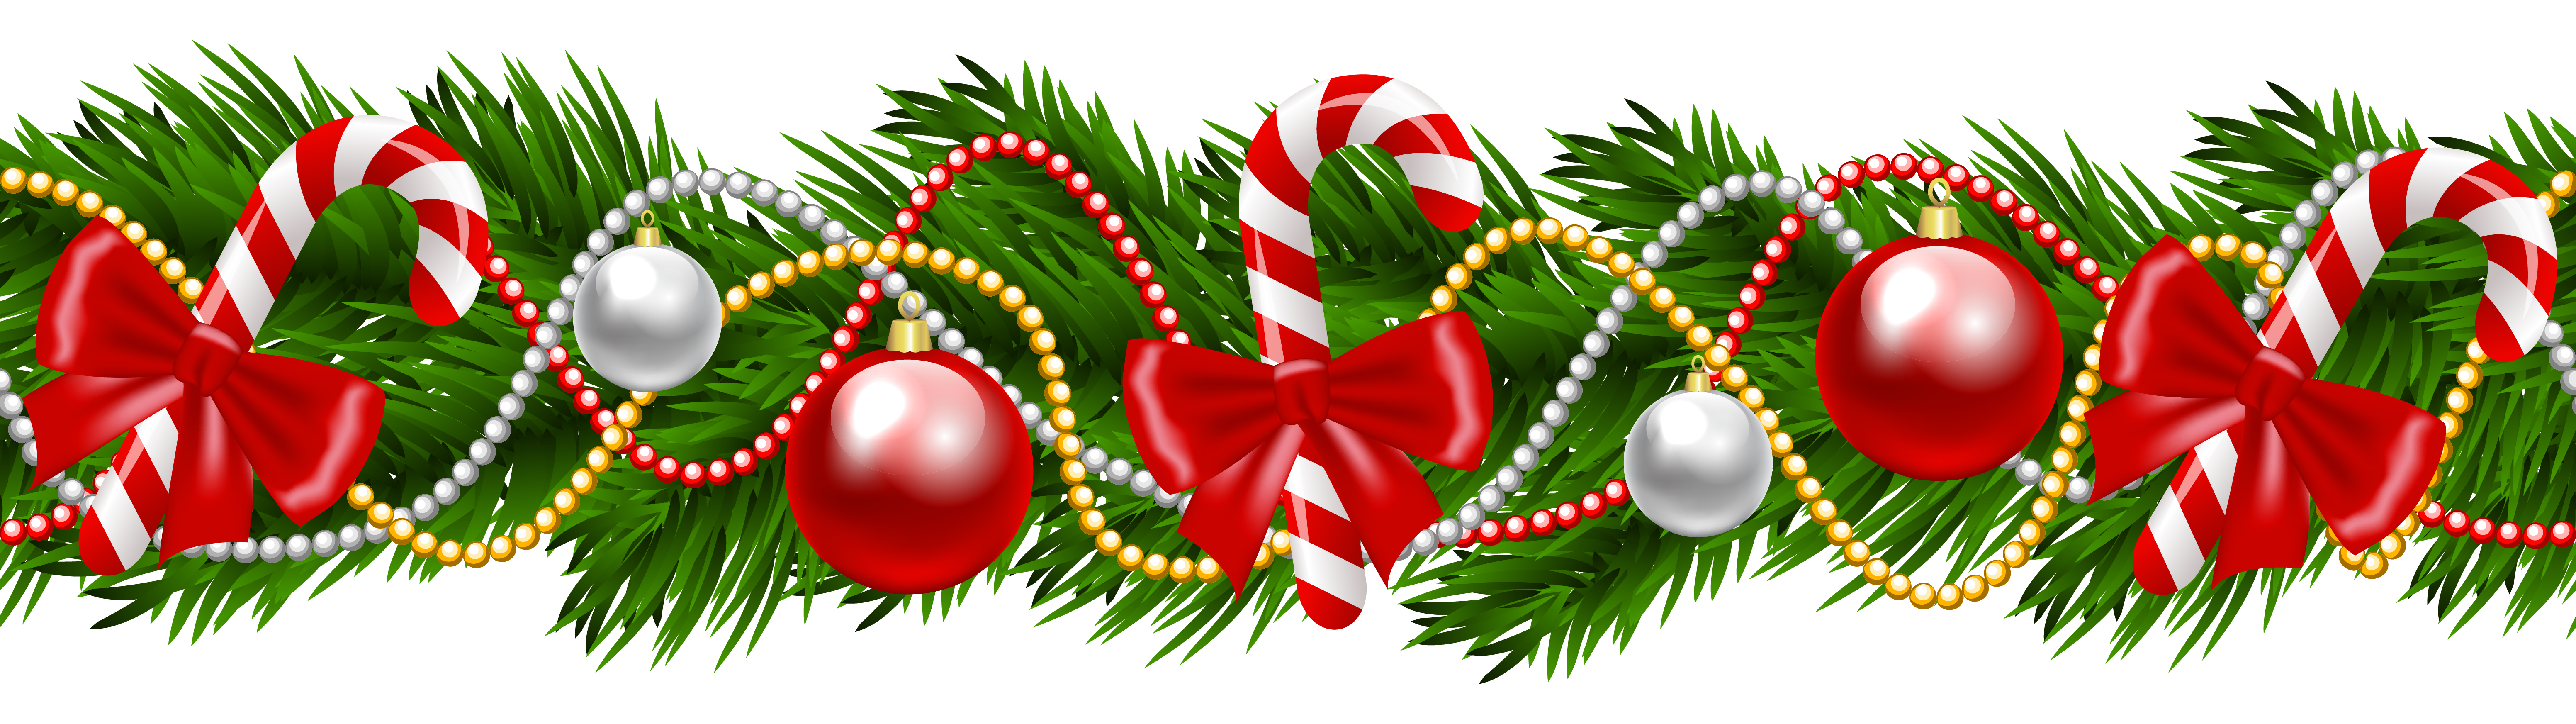 Free Christmas Garland Border Transparent Png, Download Free.